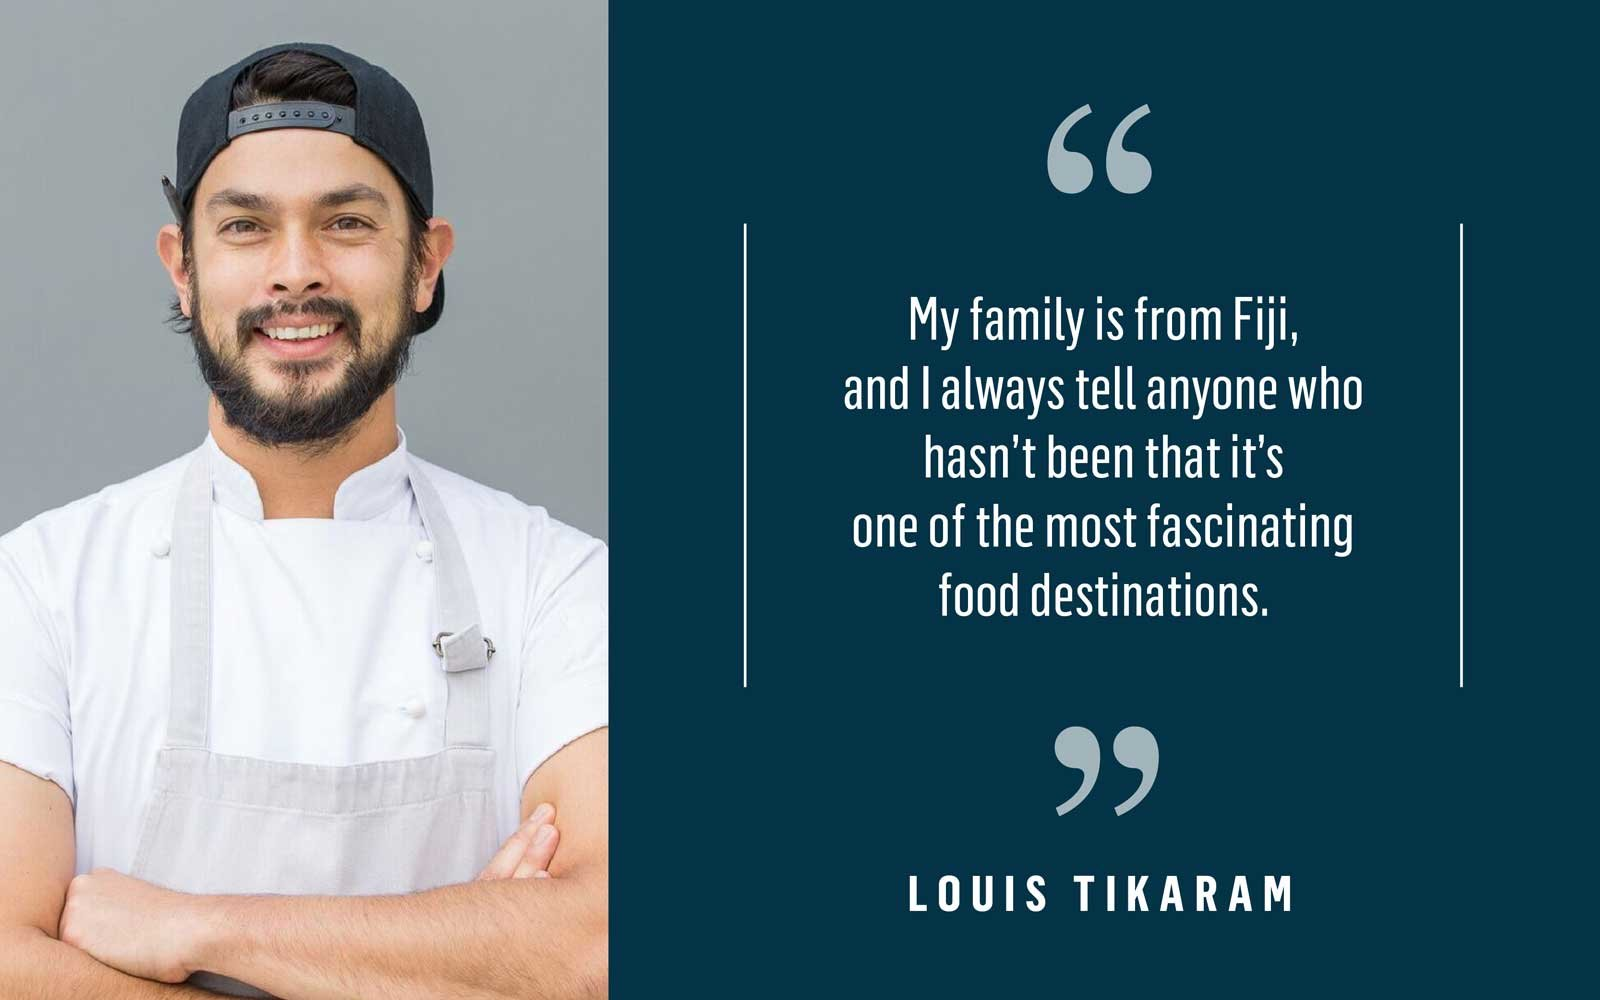 Chef Louis Tikaram